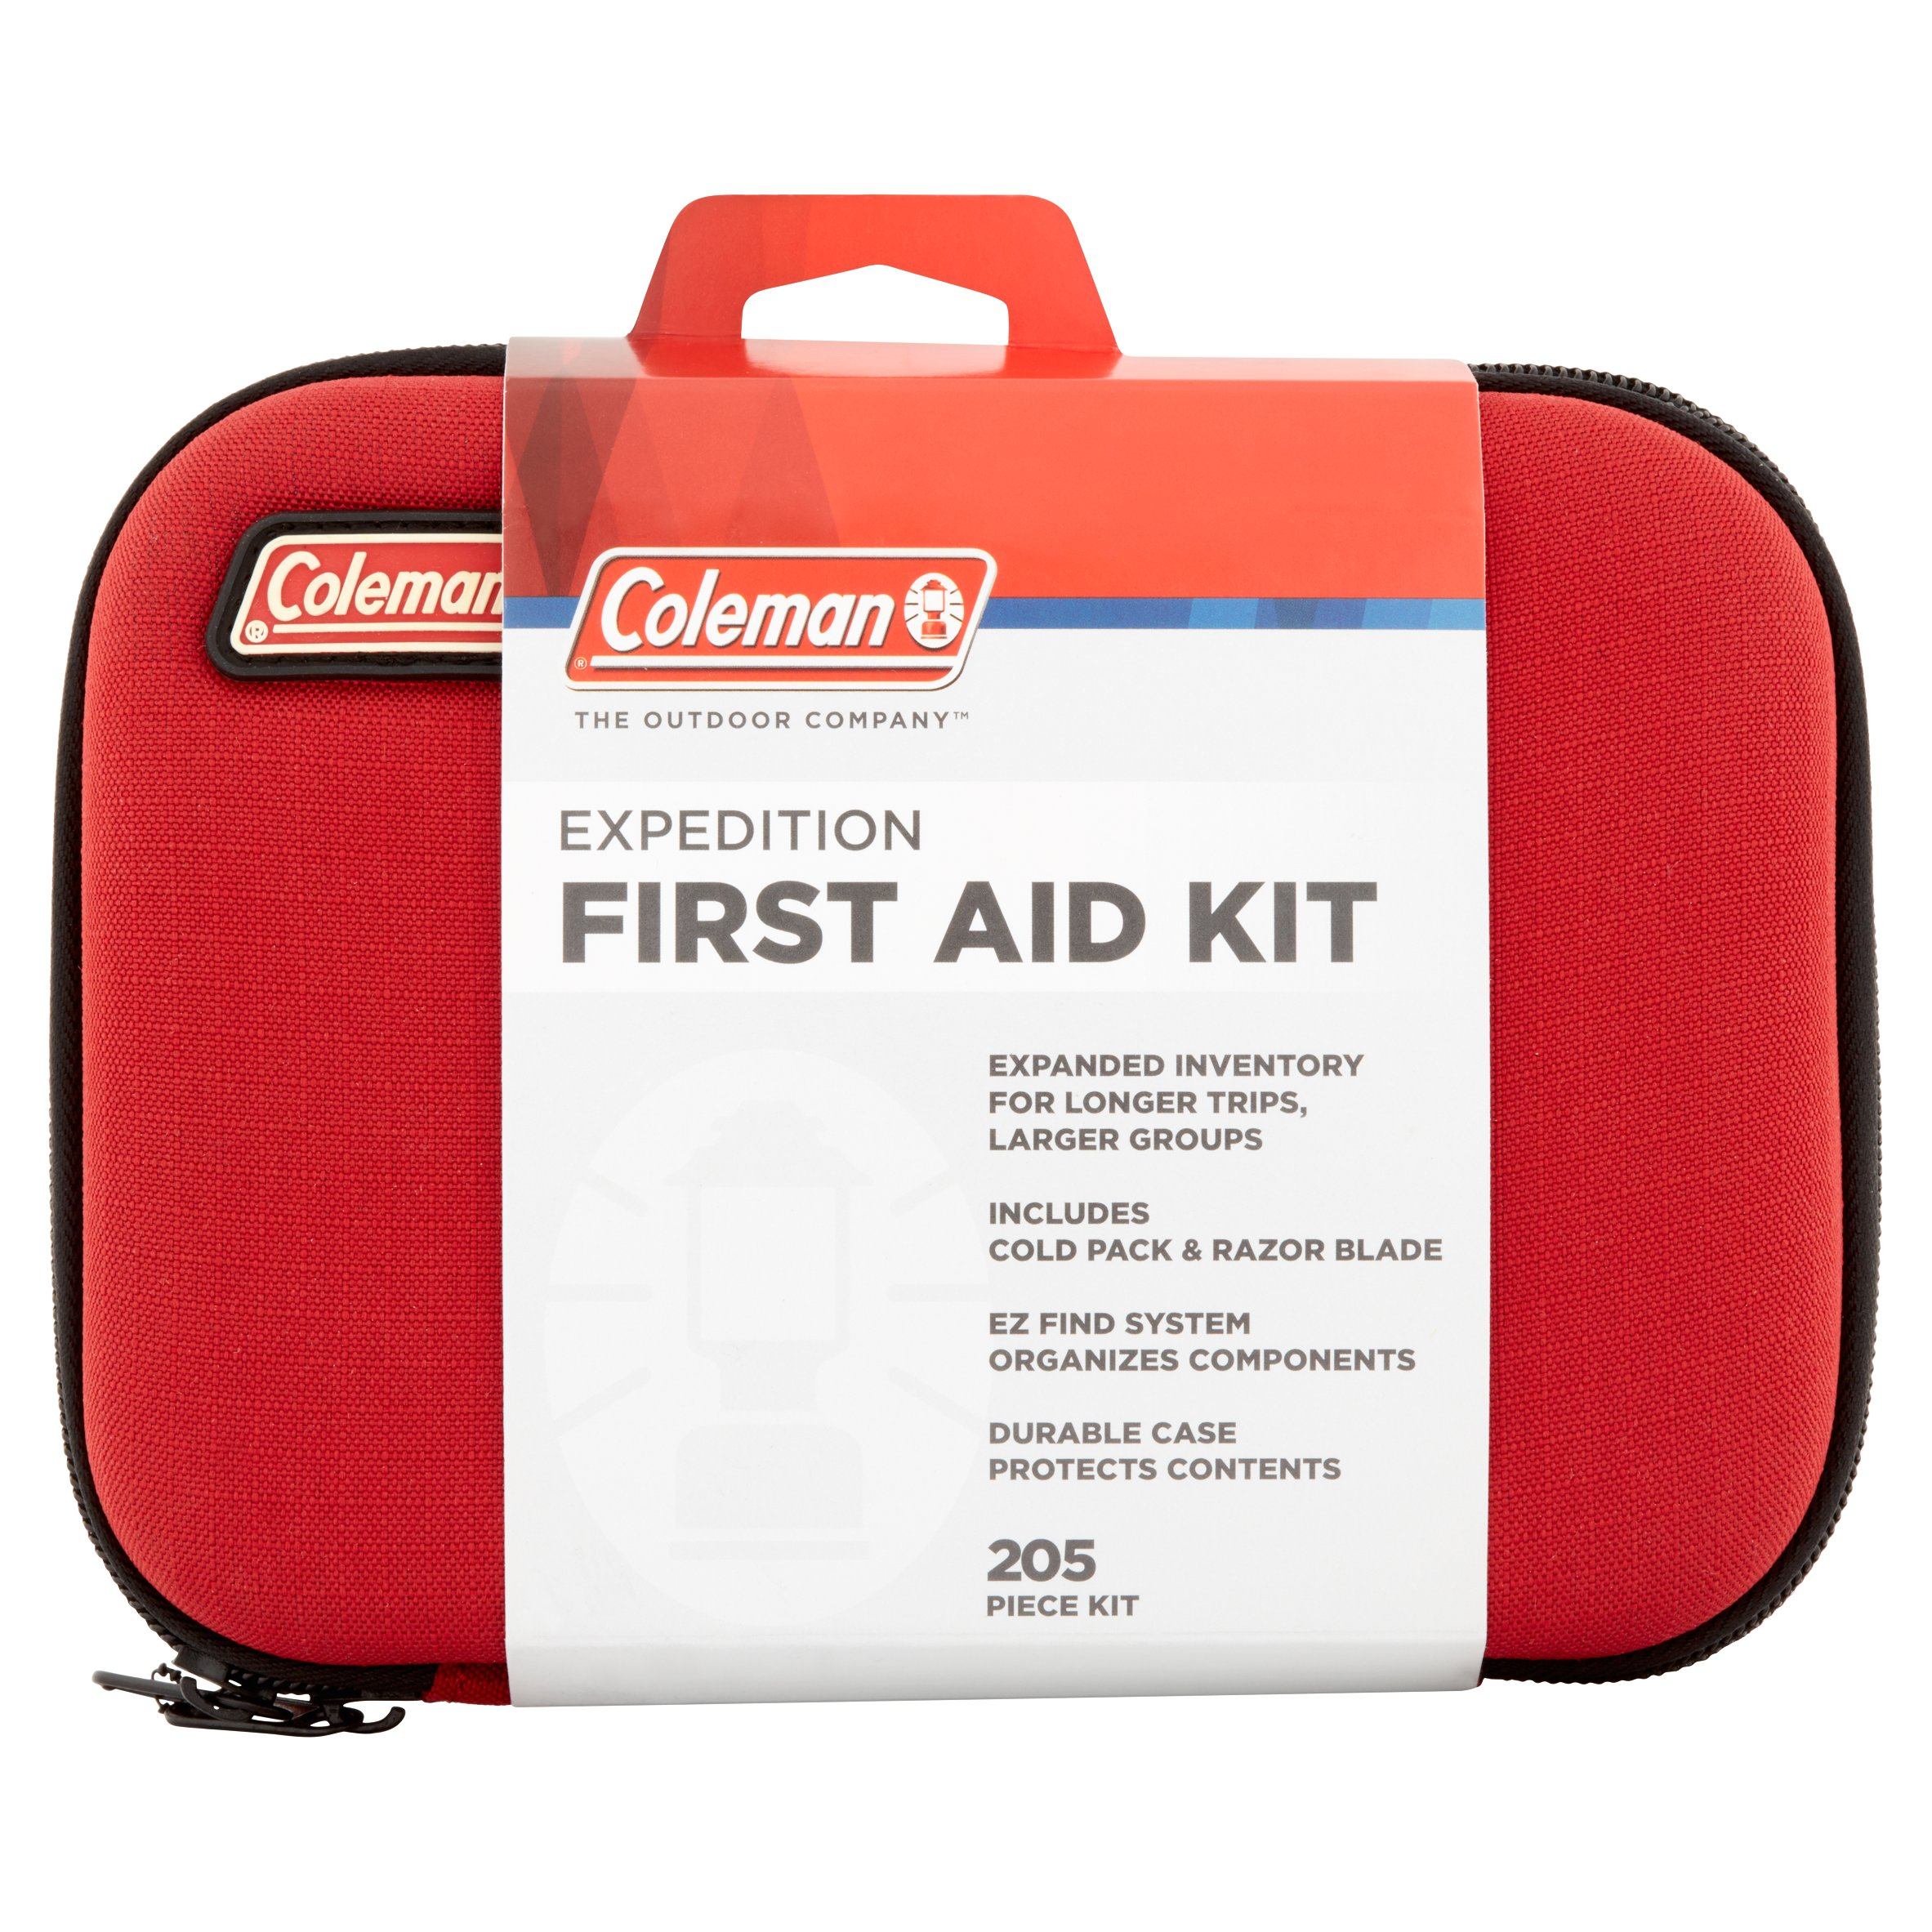 Coleman Expedition First Aid Kit, 205 items, Red by Wisconsin Pharmacal Company, LLC